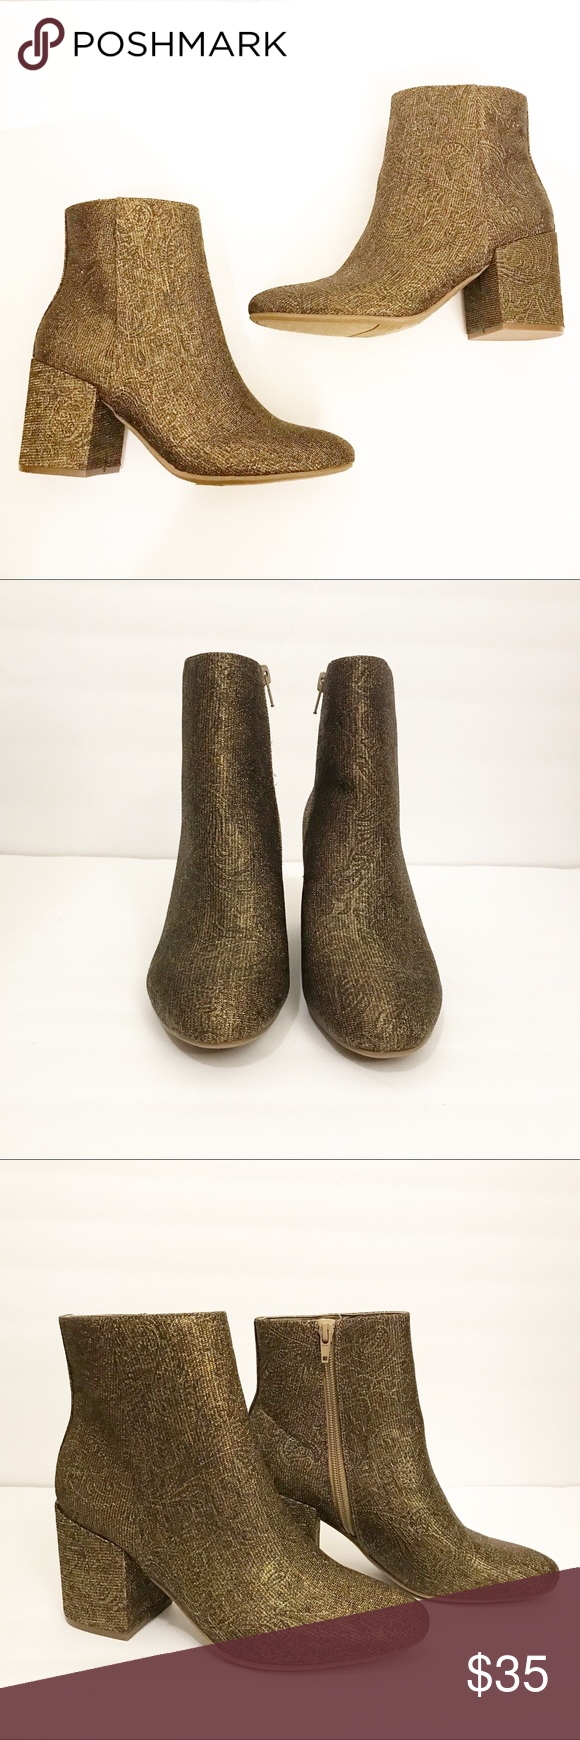 83fcf0b418a Carlos by Carlos Santana Gold Floral Sparkle Boots These NEW without tags  boots are so cute! Beautiful floral design complimented with glitter sparkle  ...